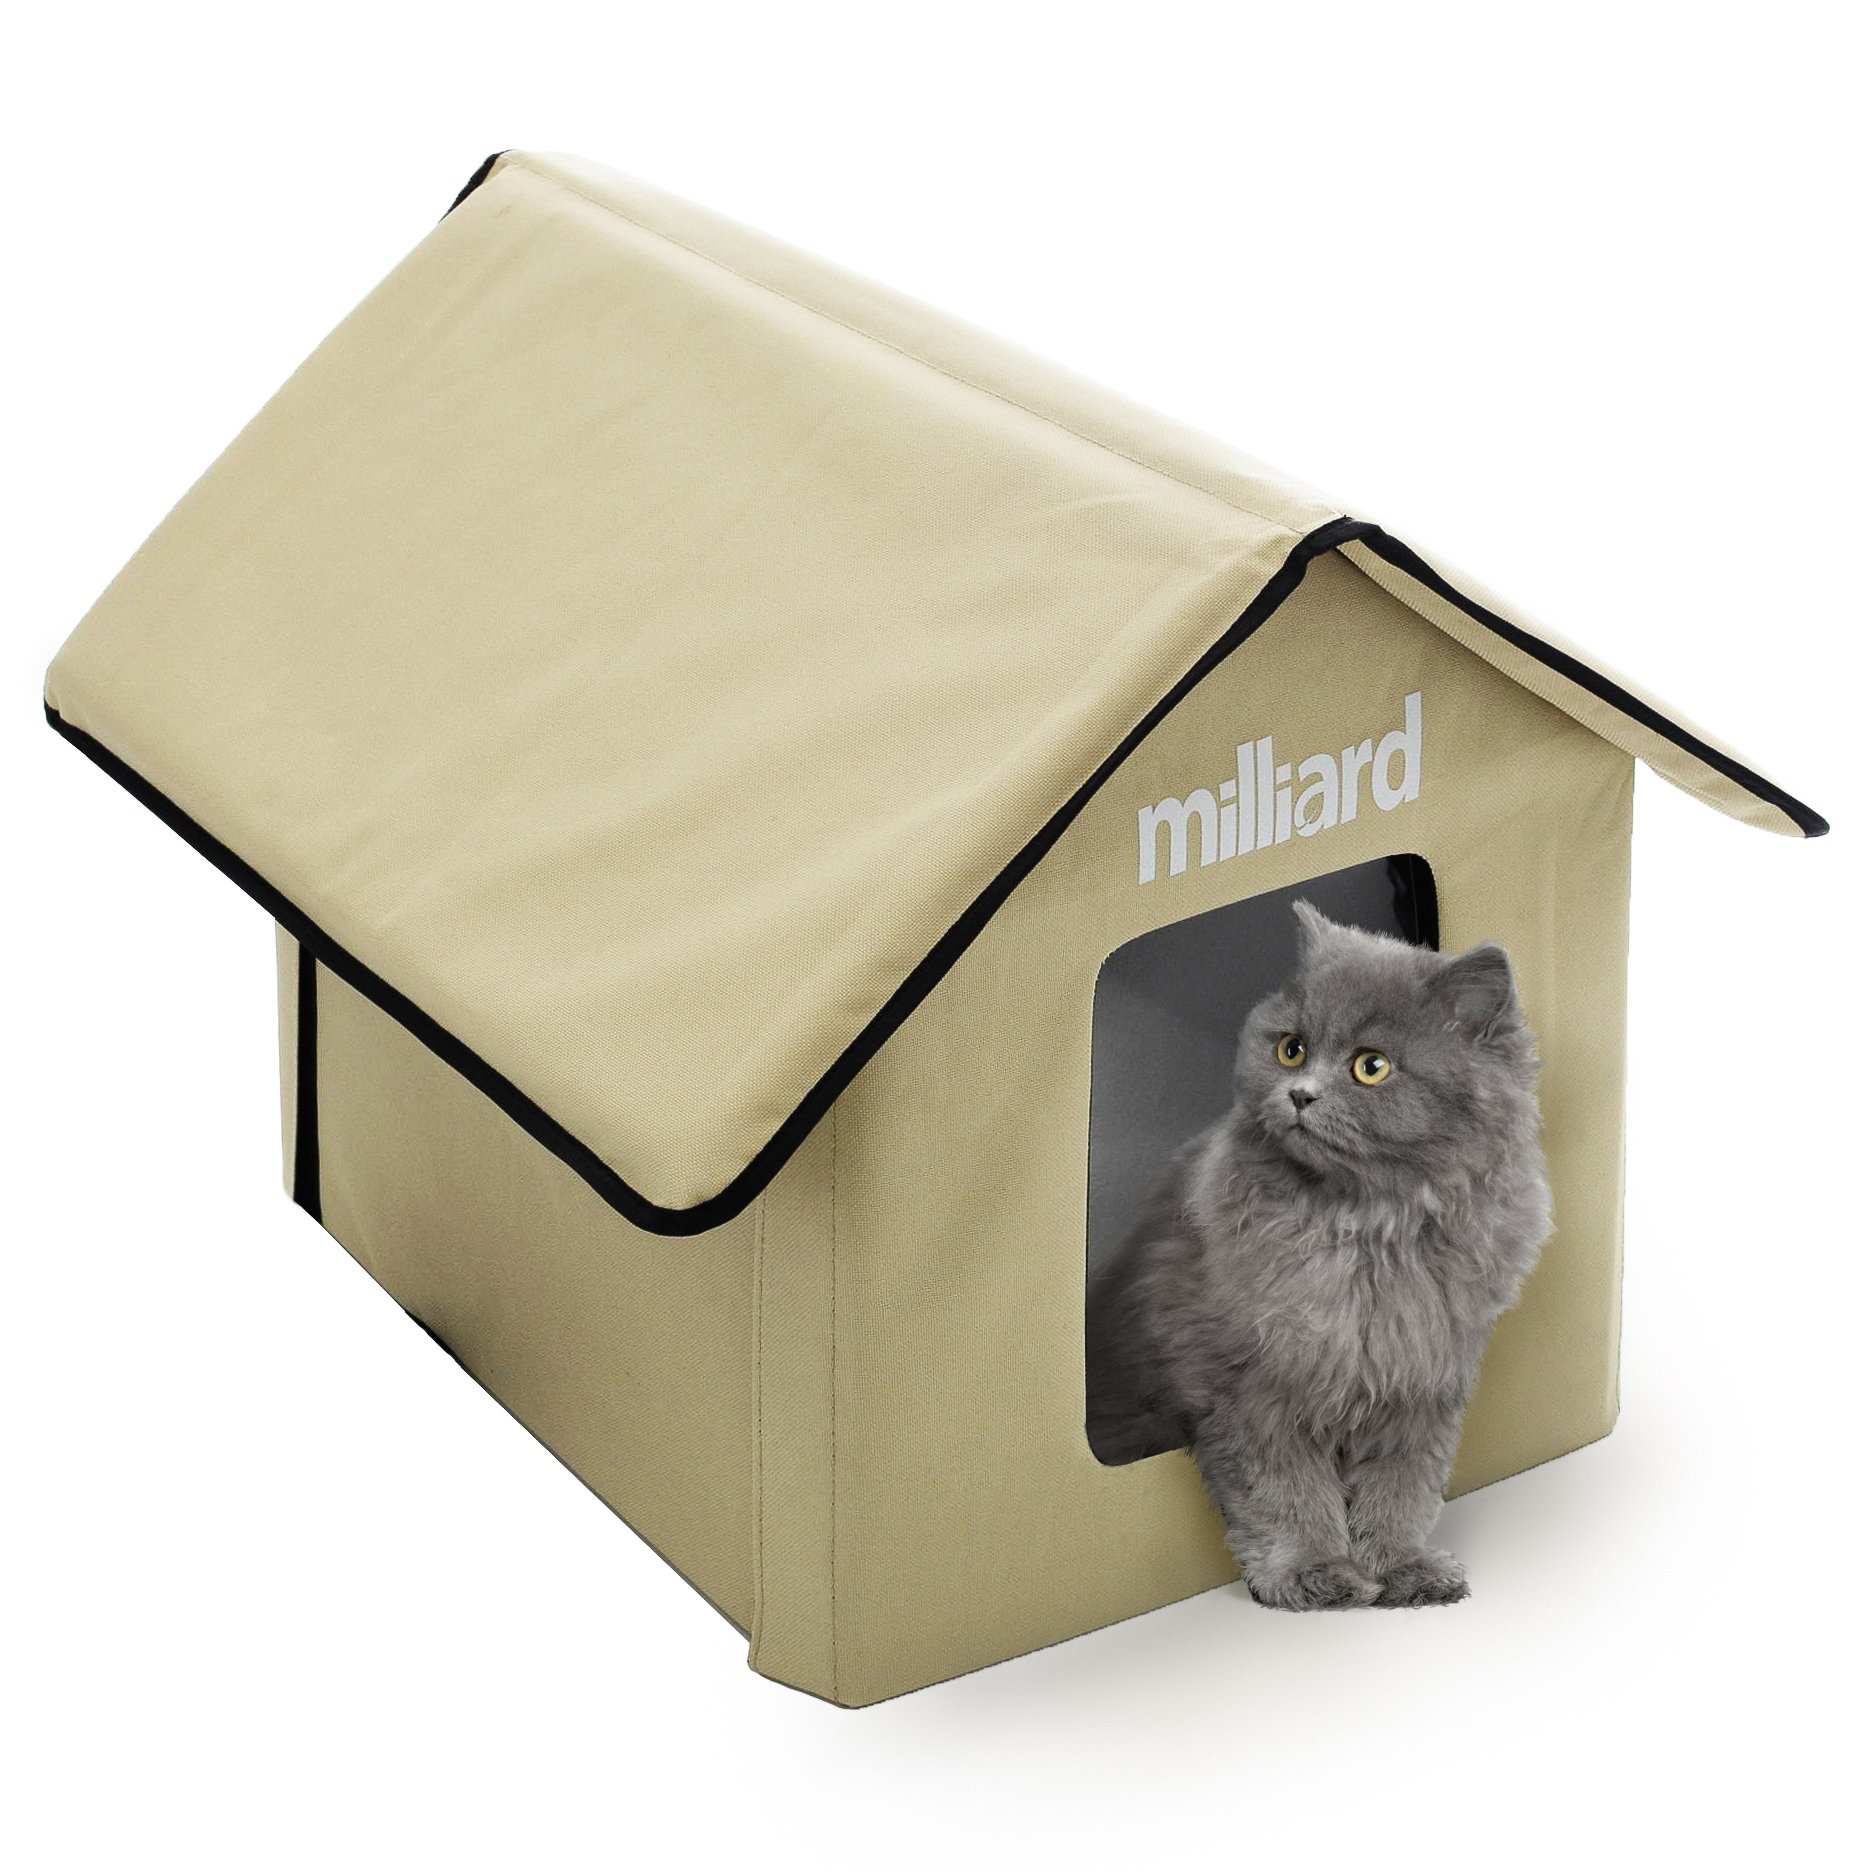 Milliard Outdoor Cat House for Your Pet Kitty or Puppy; Perfect Portable Bed Cave or Shelter, 22 x 18 x 17 in by Milliard